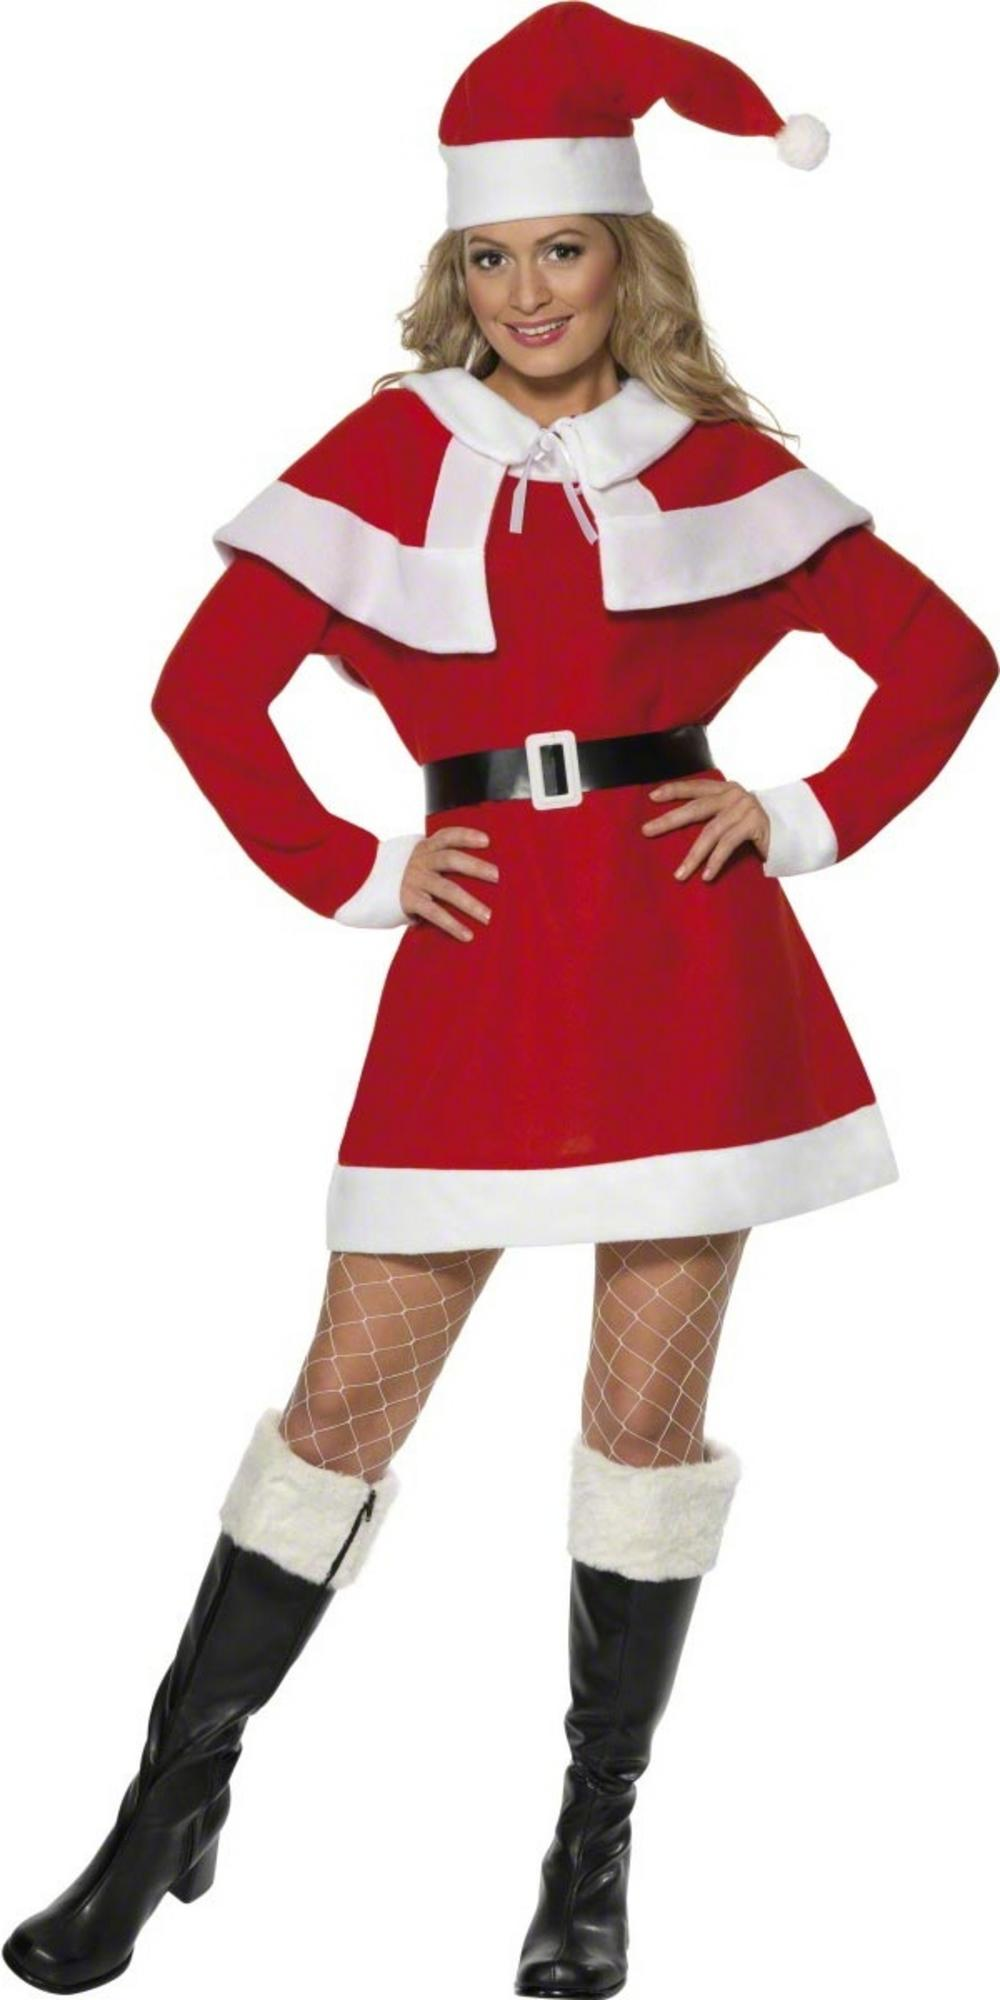 71af9a4e9f43e Miss Santa Fleece Christmas Costume Quick View. Red